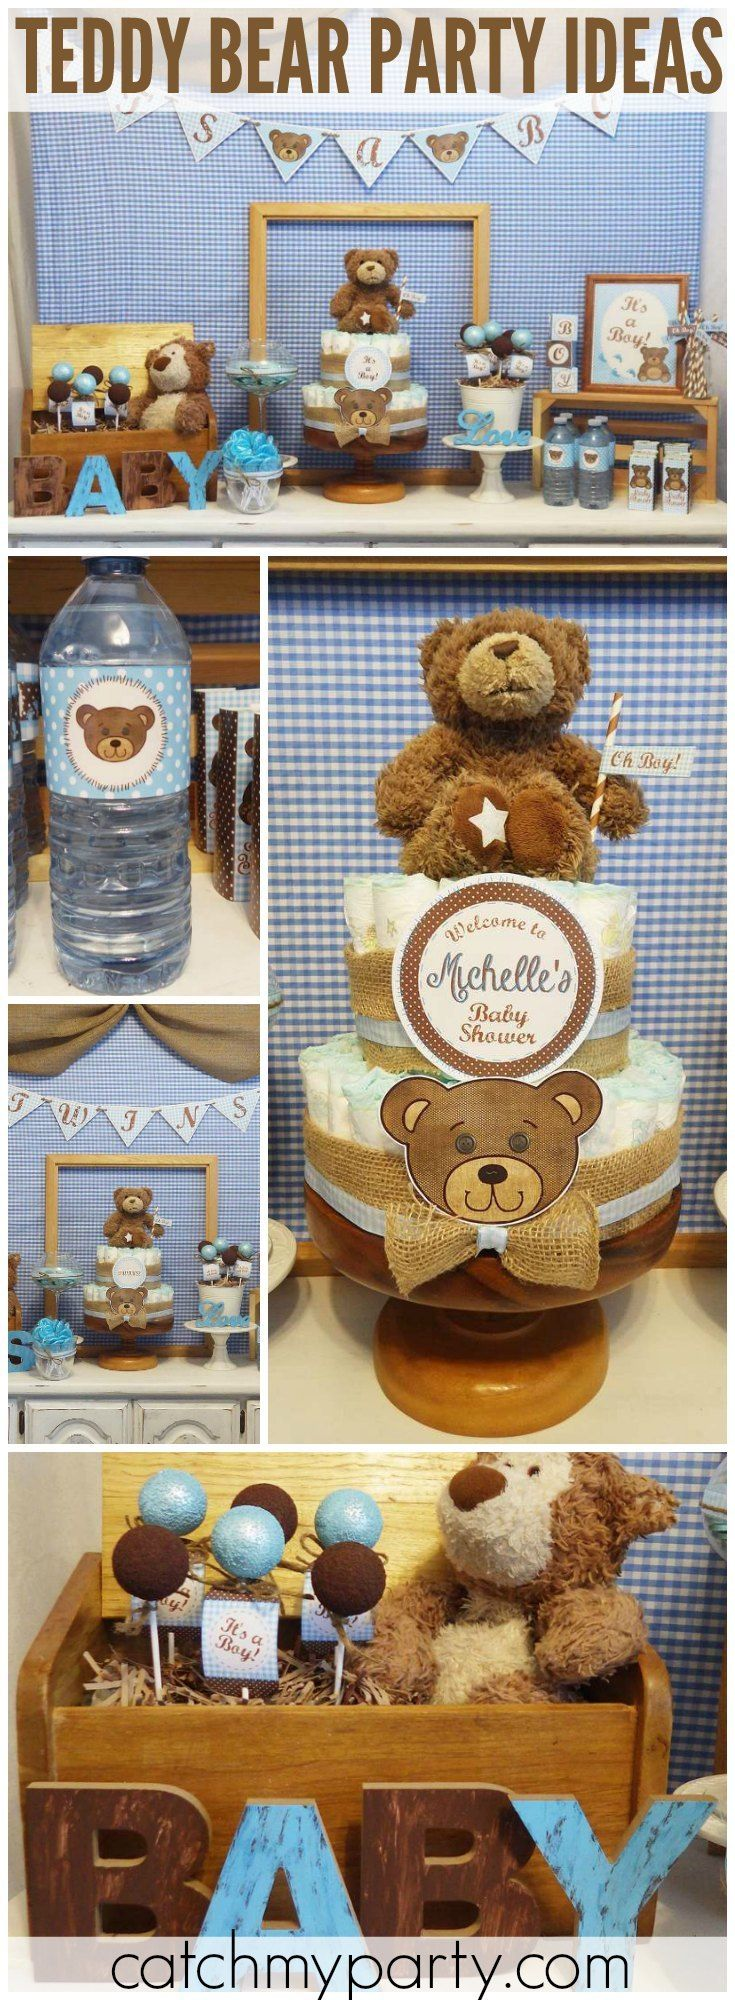 best 25 brown teddy bear ideas on pinterest teddy grahams bear